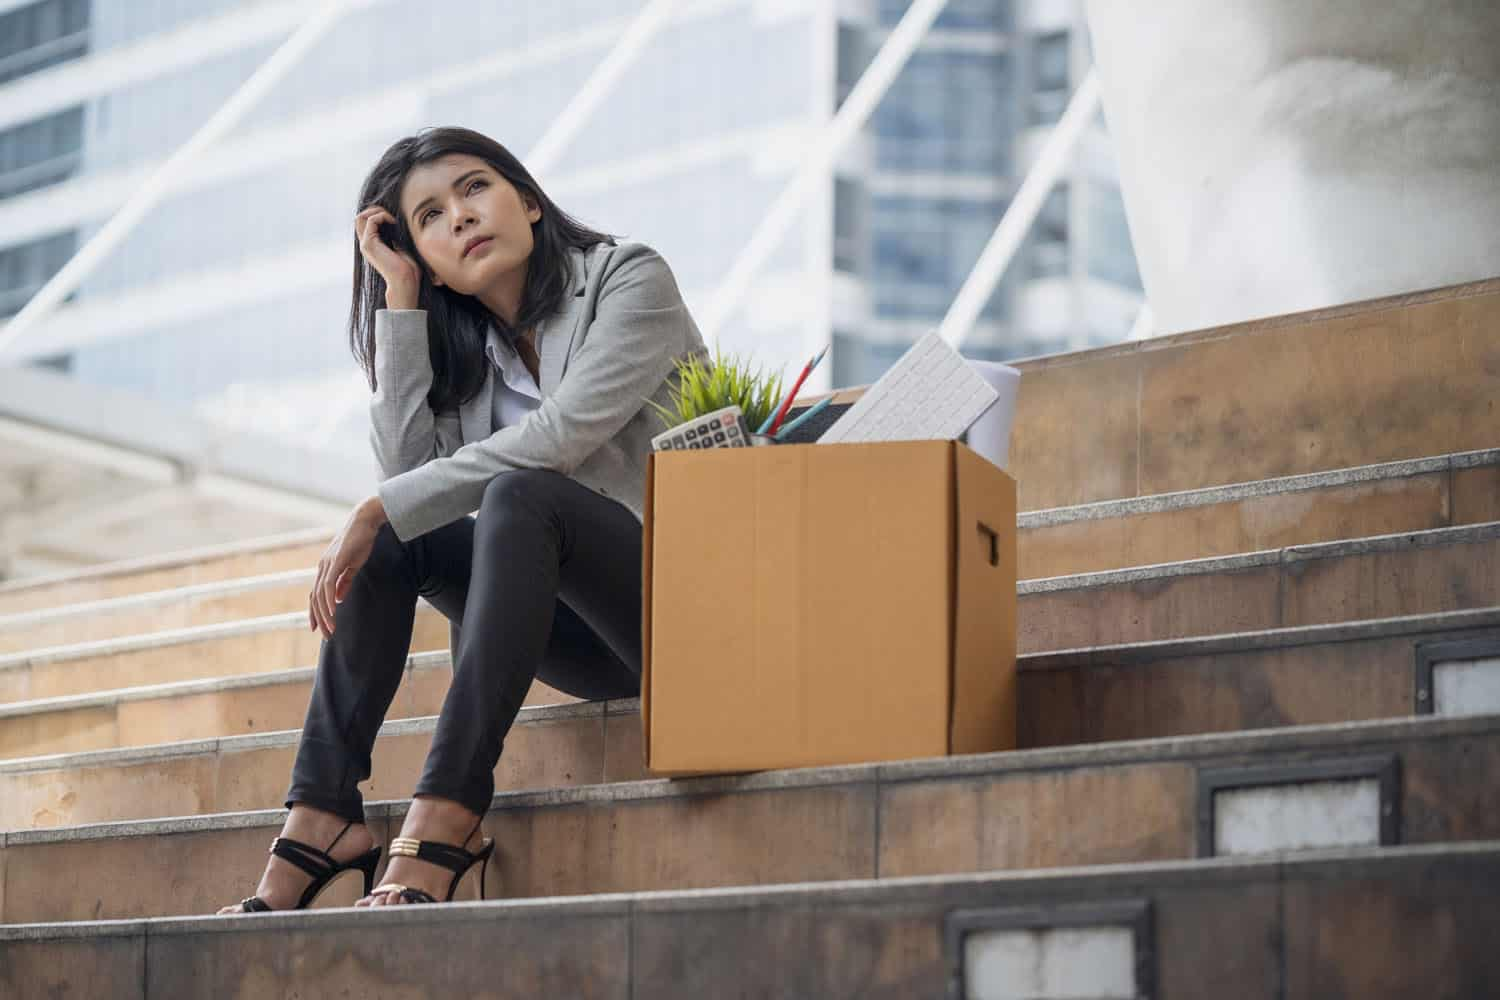 woman sitting on stairs with box after losing her job